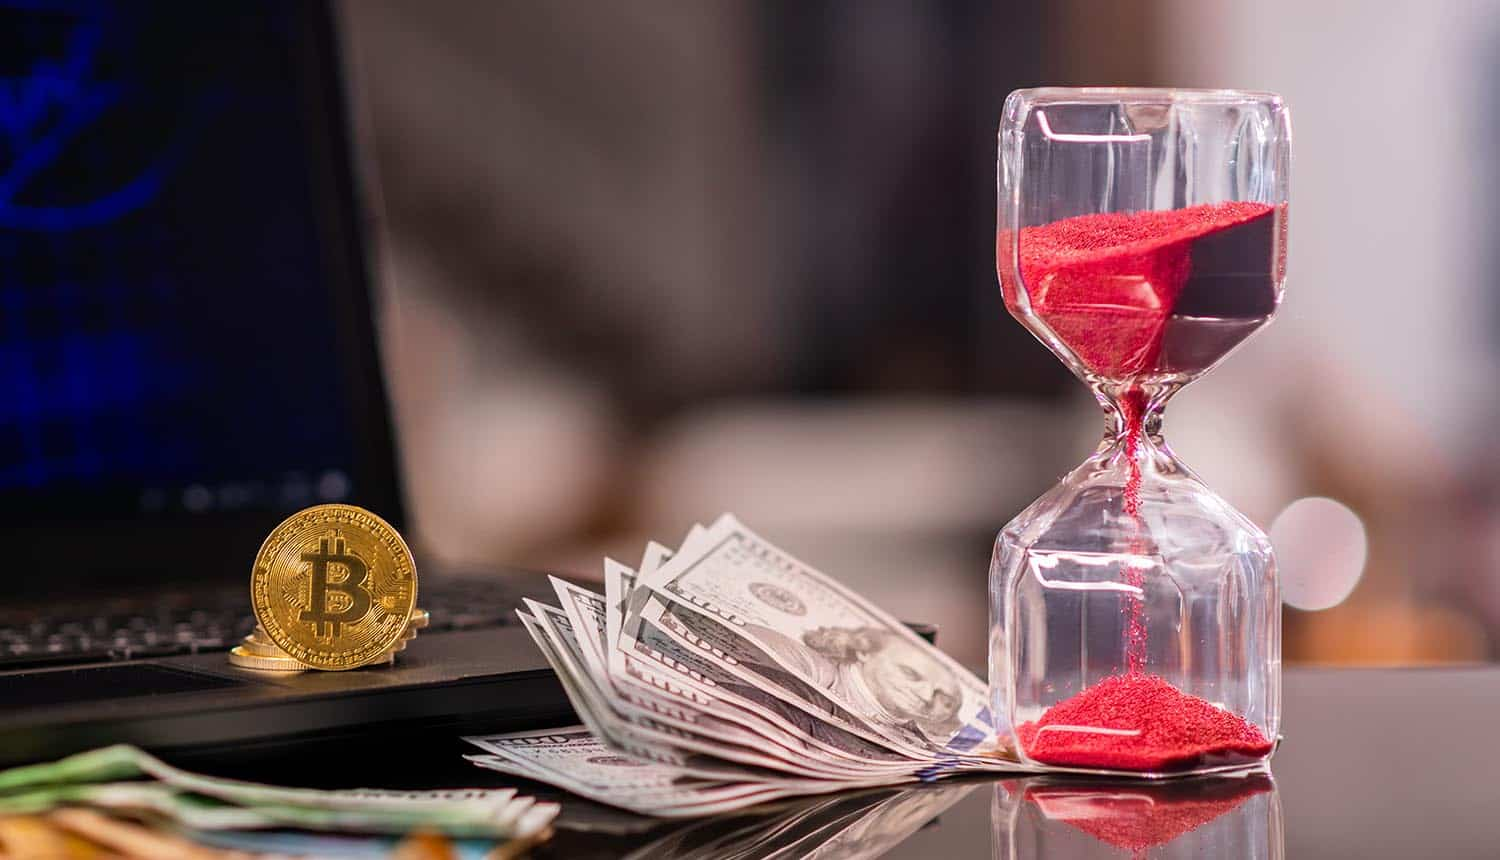 Hour glass and cryptocurrency in front of laptop showing ransomware payments